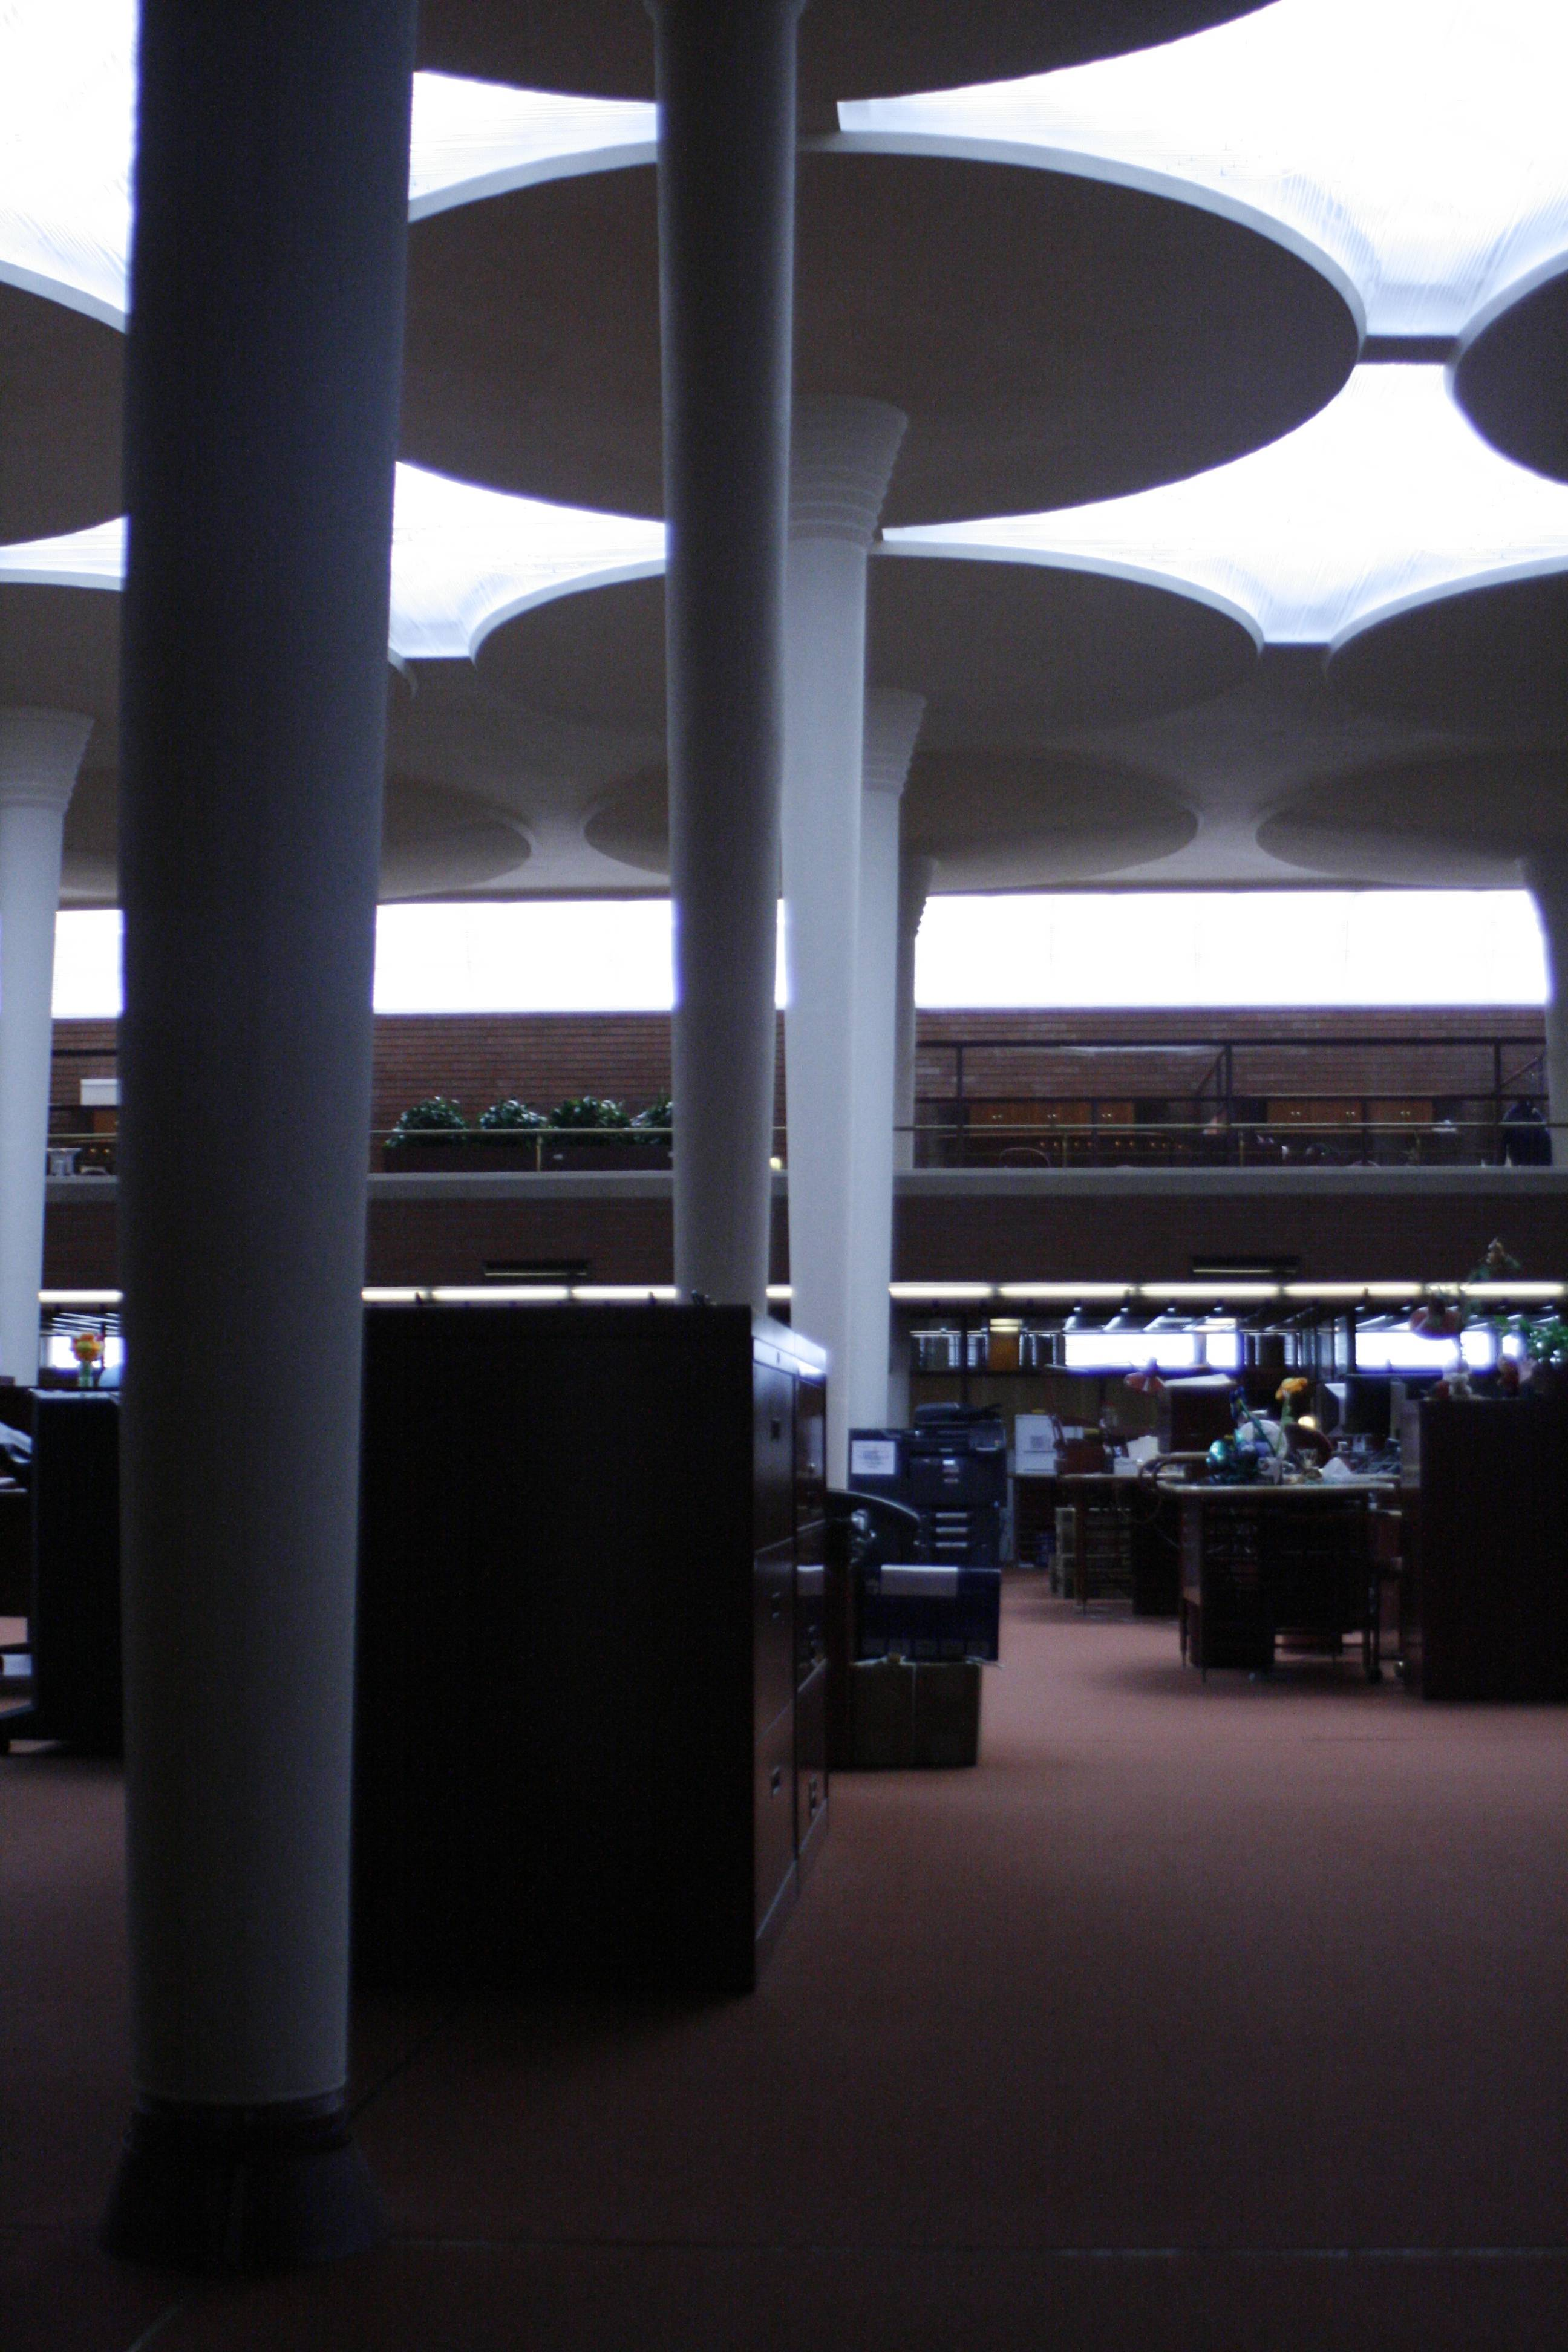 Architect Frank Lloyd Wright used the lily pad-like pillars in the great room of the SC Johnson Administration Building to support the structure, allowing him to create exterior walls of glass that provide a lot of natural light.